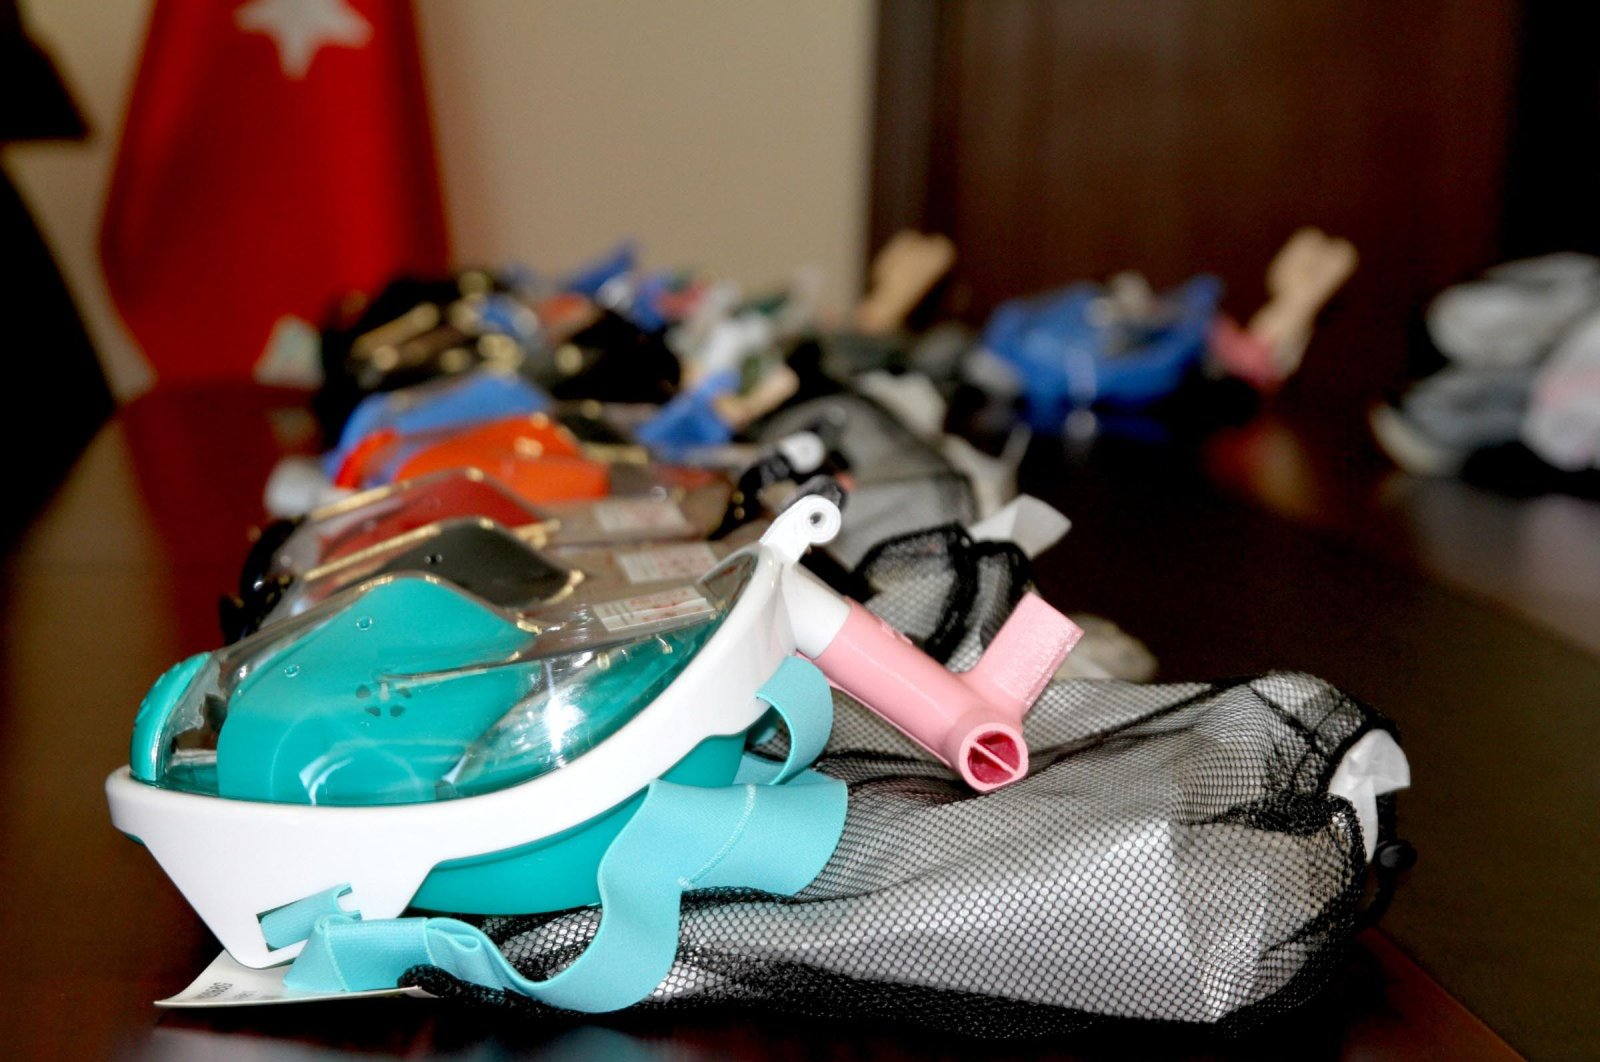 Masks that were manufactured by Trakya University with 3D printers, Edirne, Turkey, April 9, 2020. (DHA Photo)